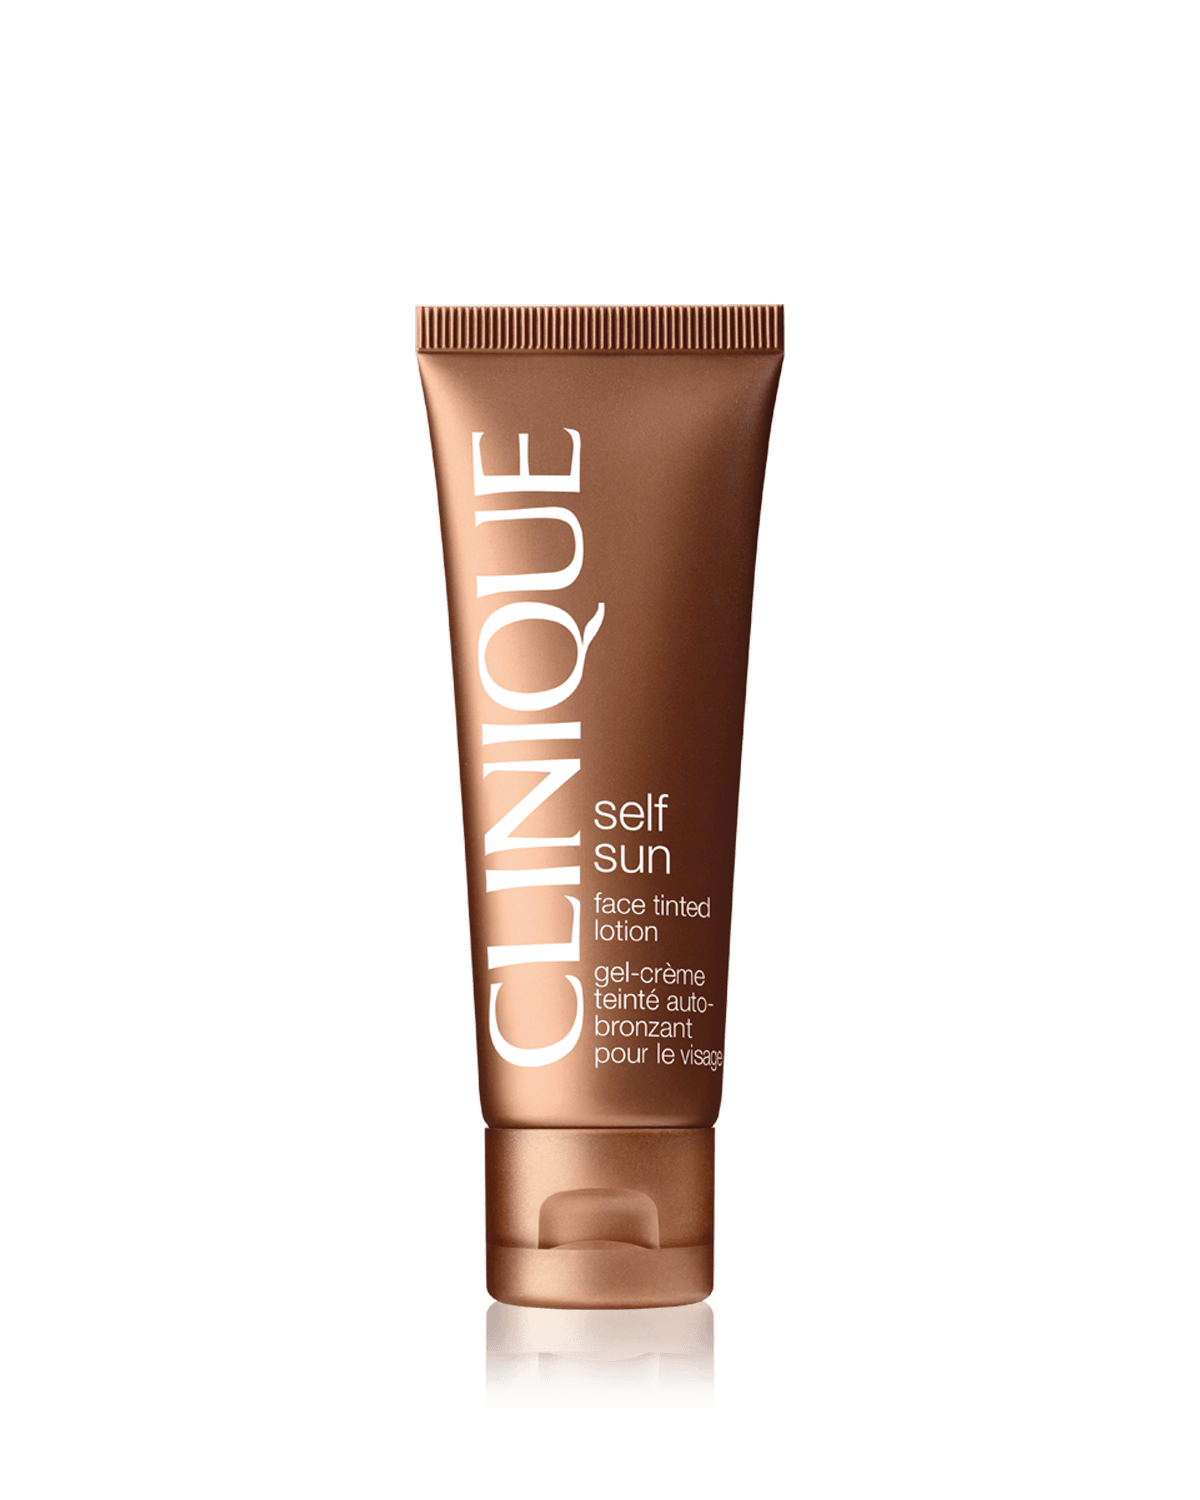 Self Sun™ Face Tinted Lotion